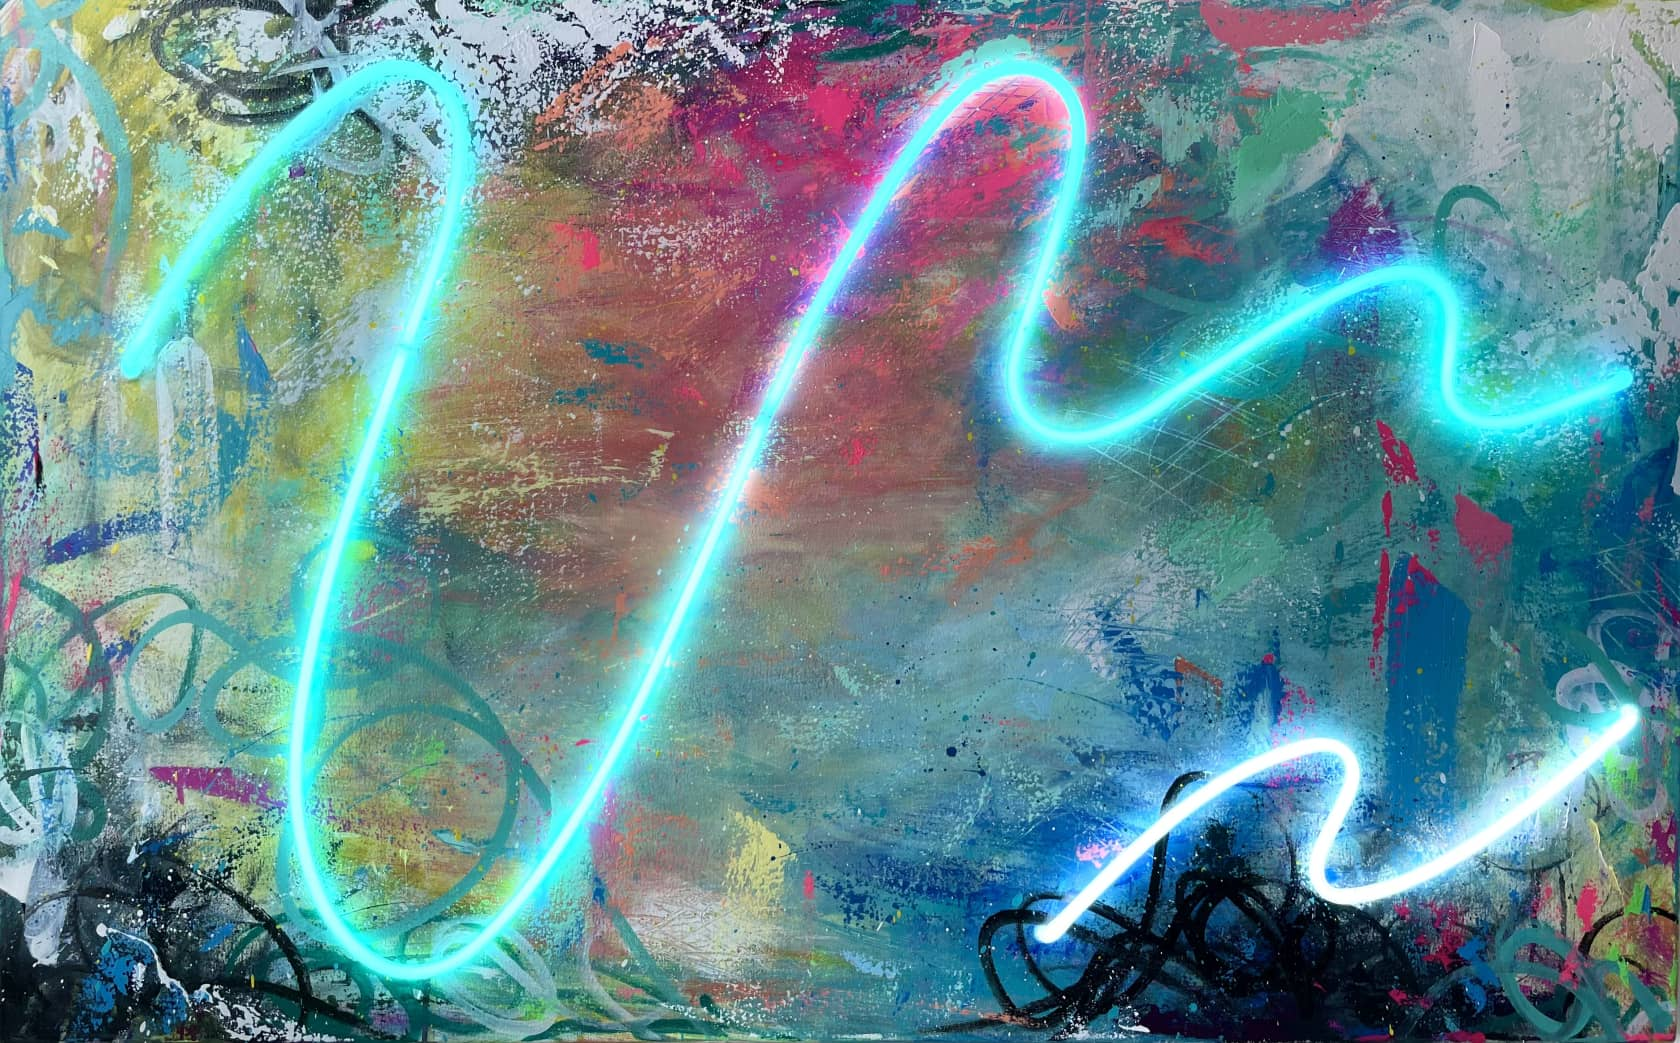 Sean Crim Beauty in Chaos 6 Acrylic and neon on canvas